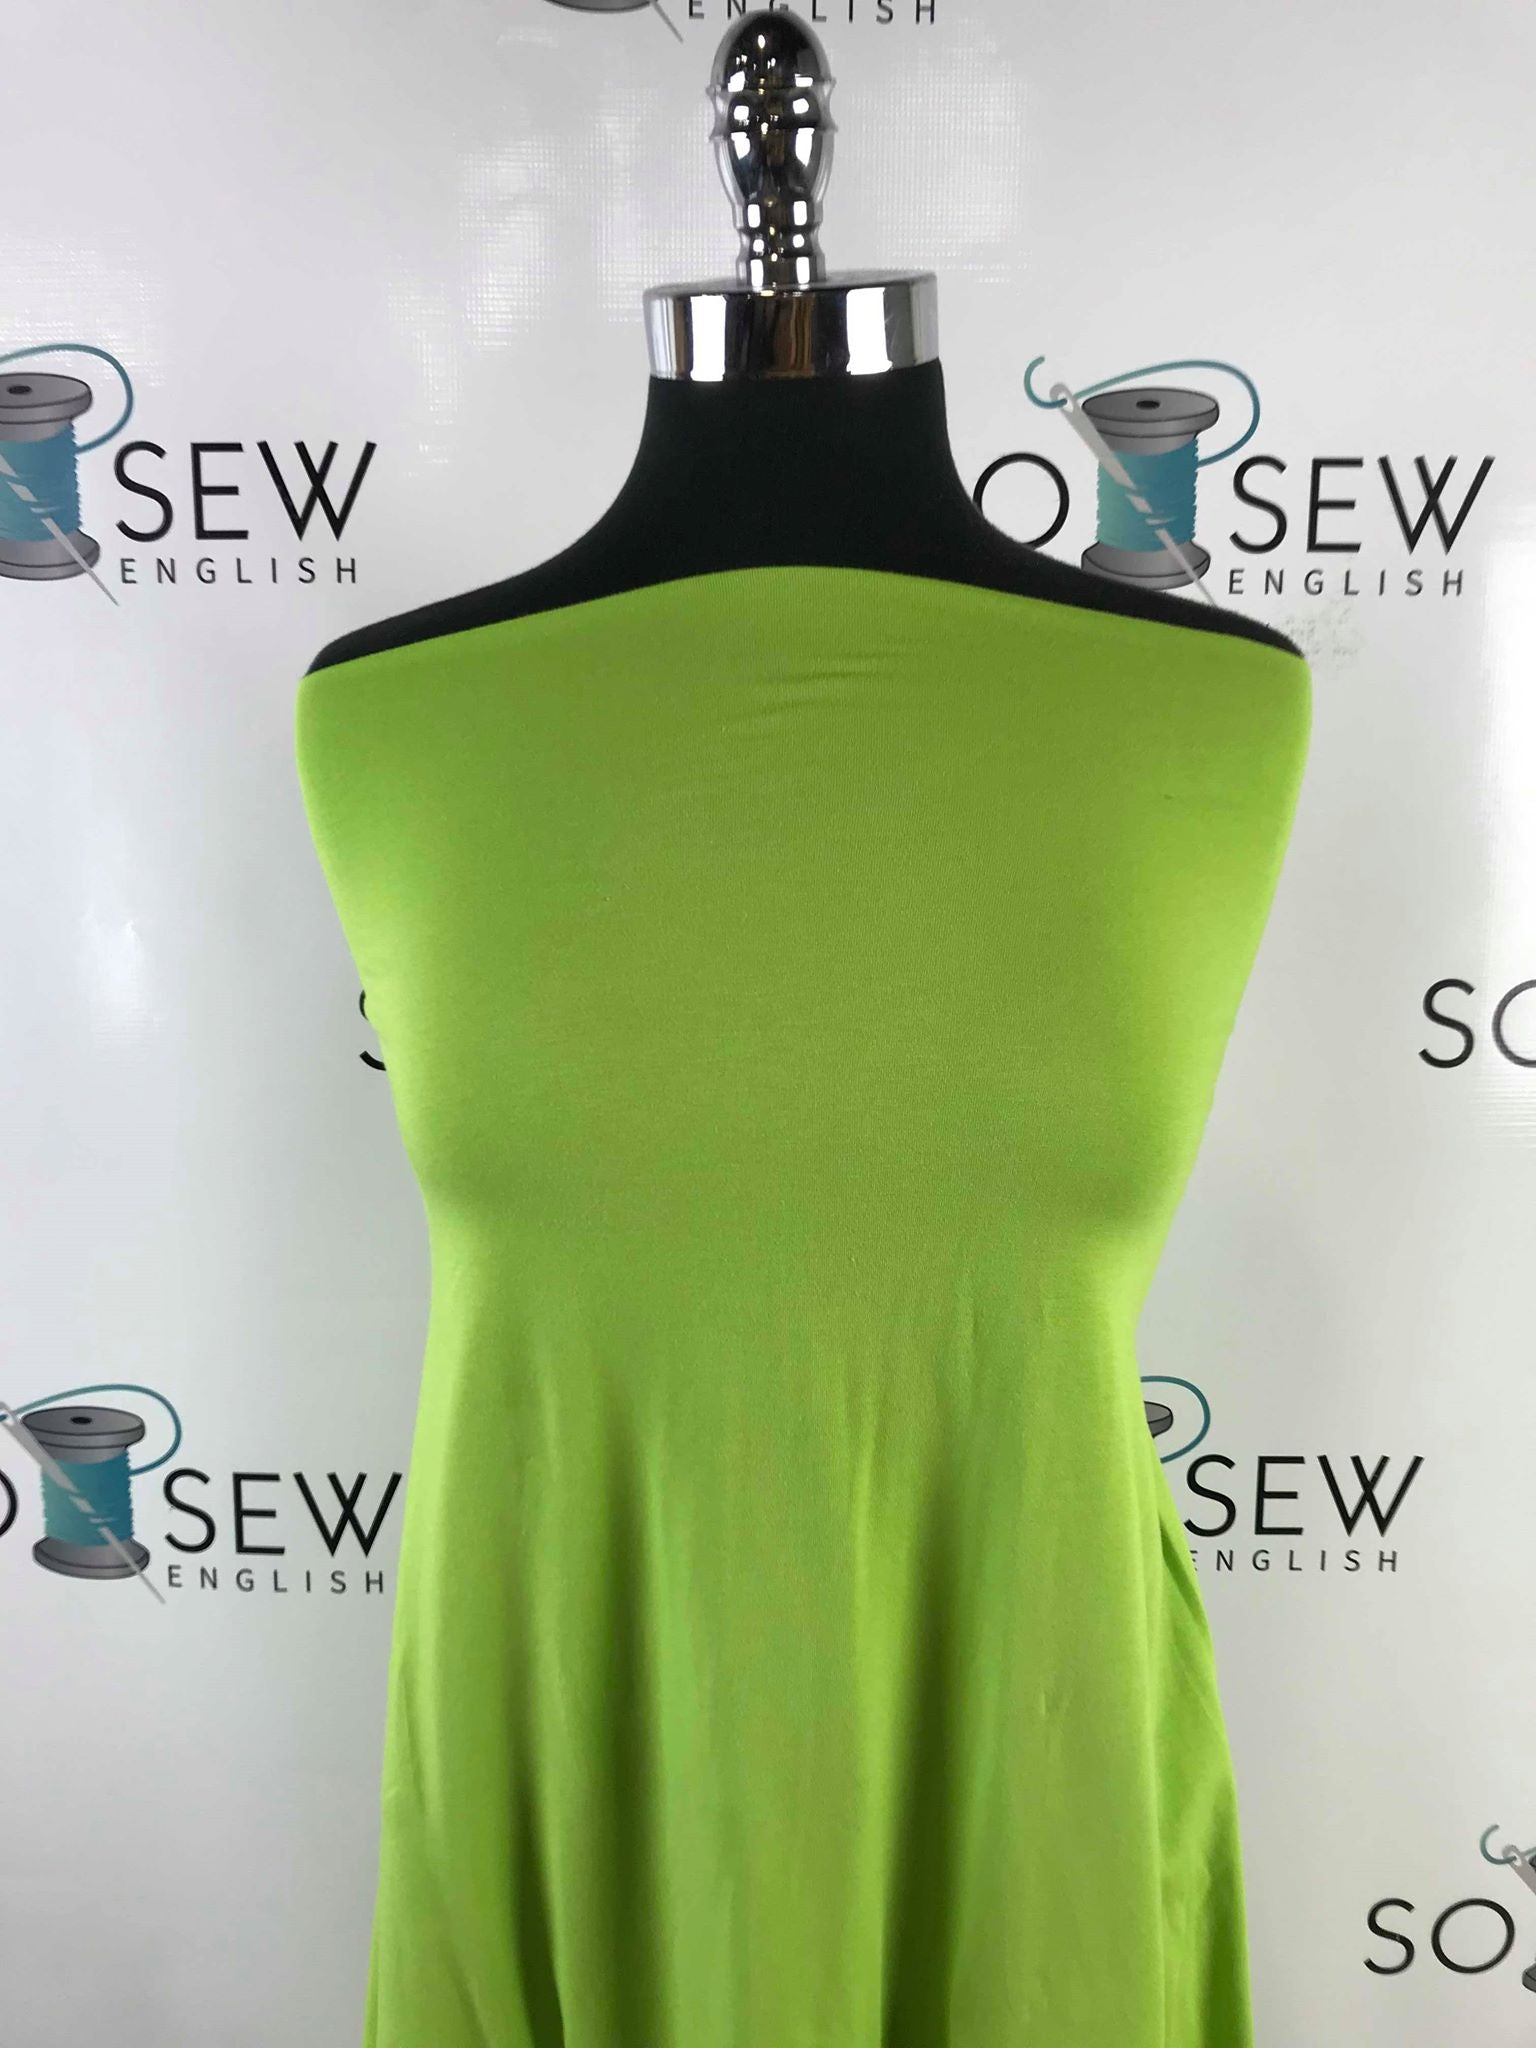 Solid Lime Green -Cotton Modal Spandex - By the yard